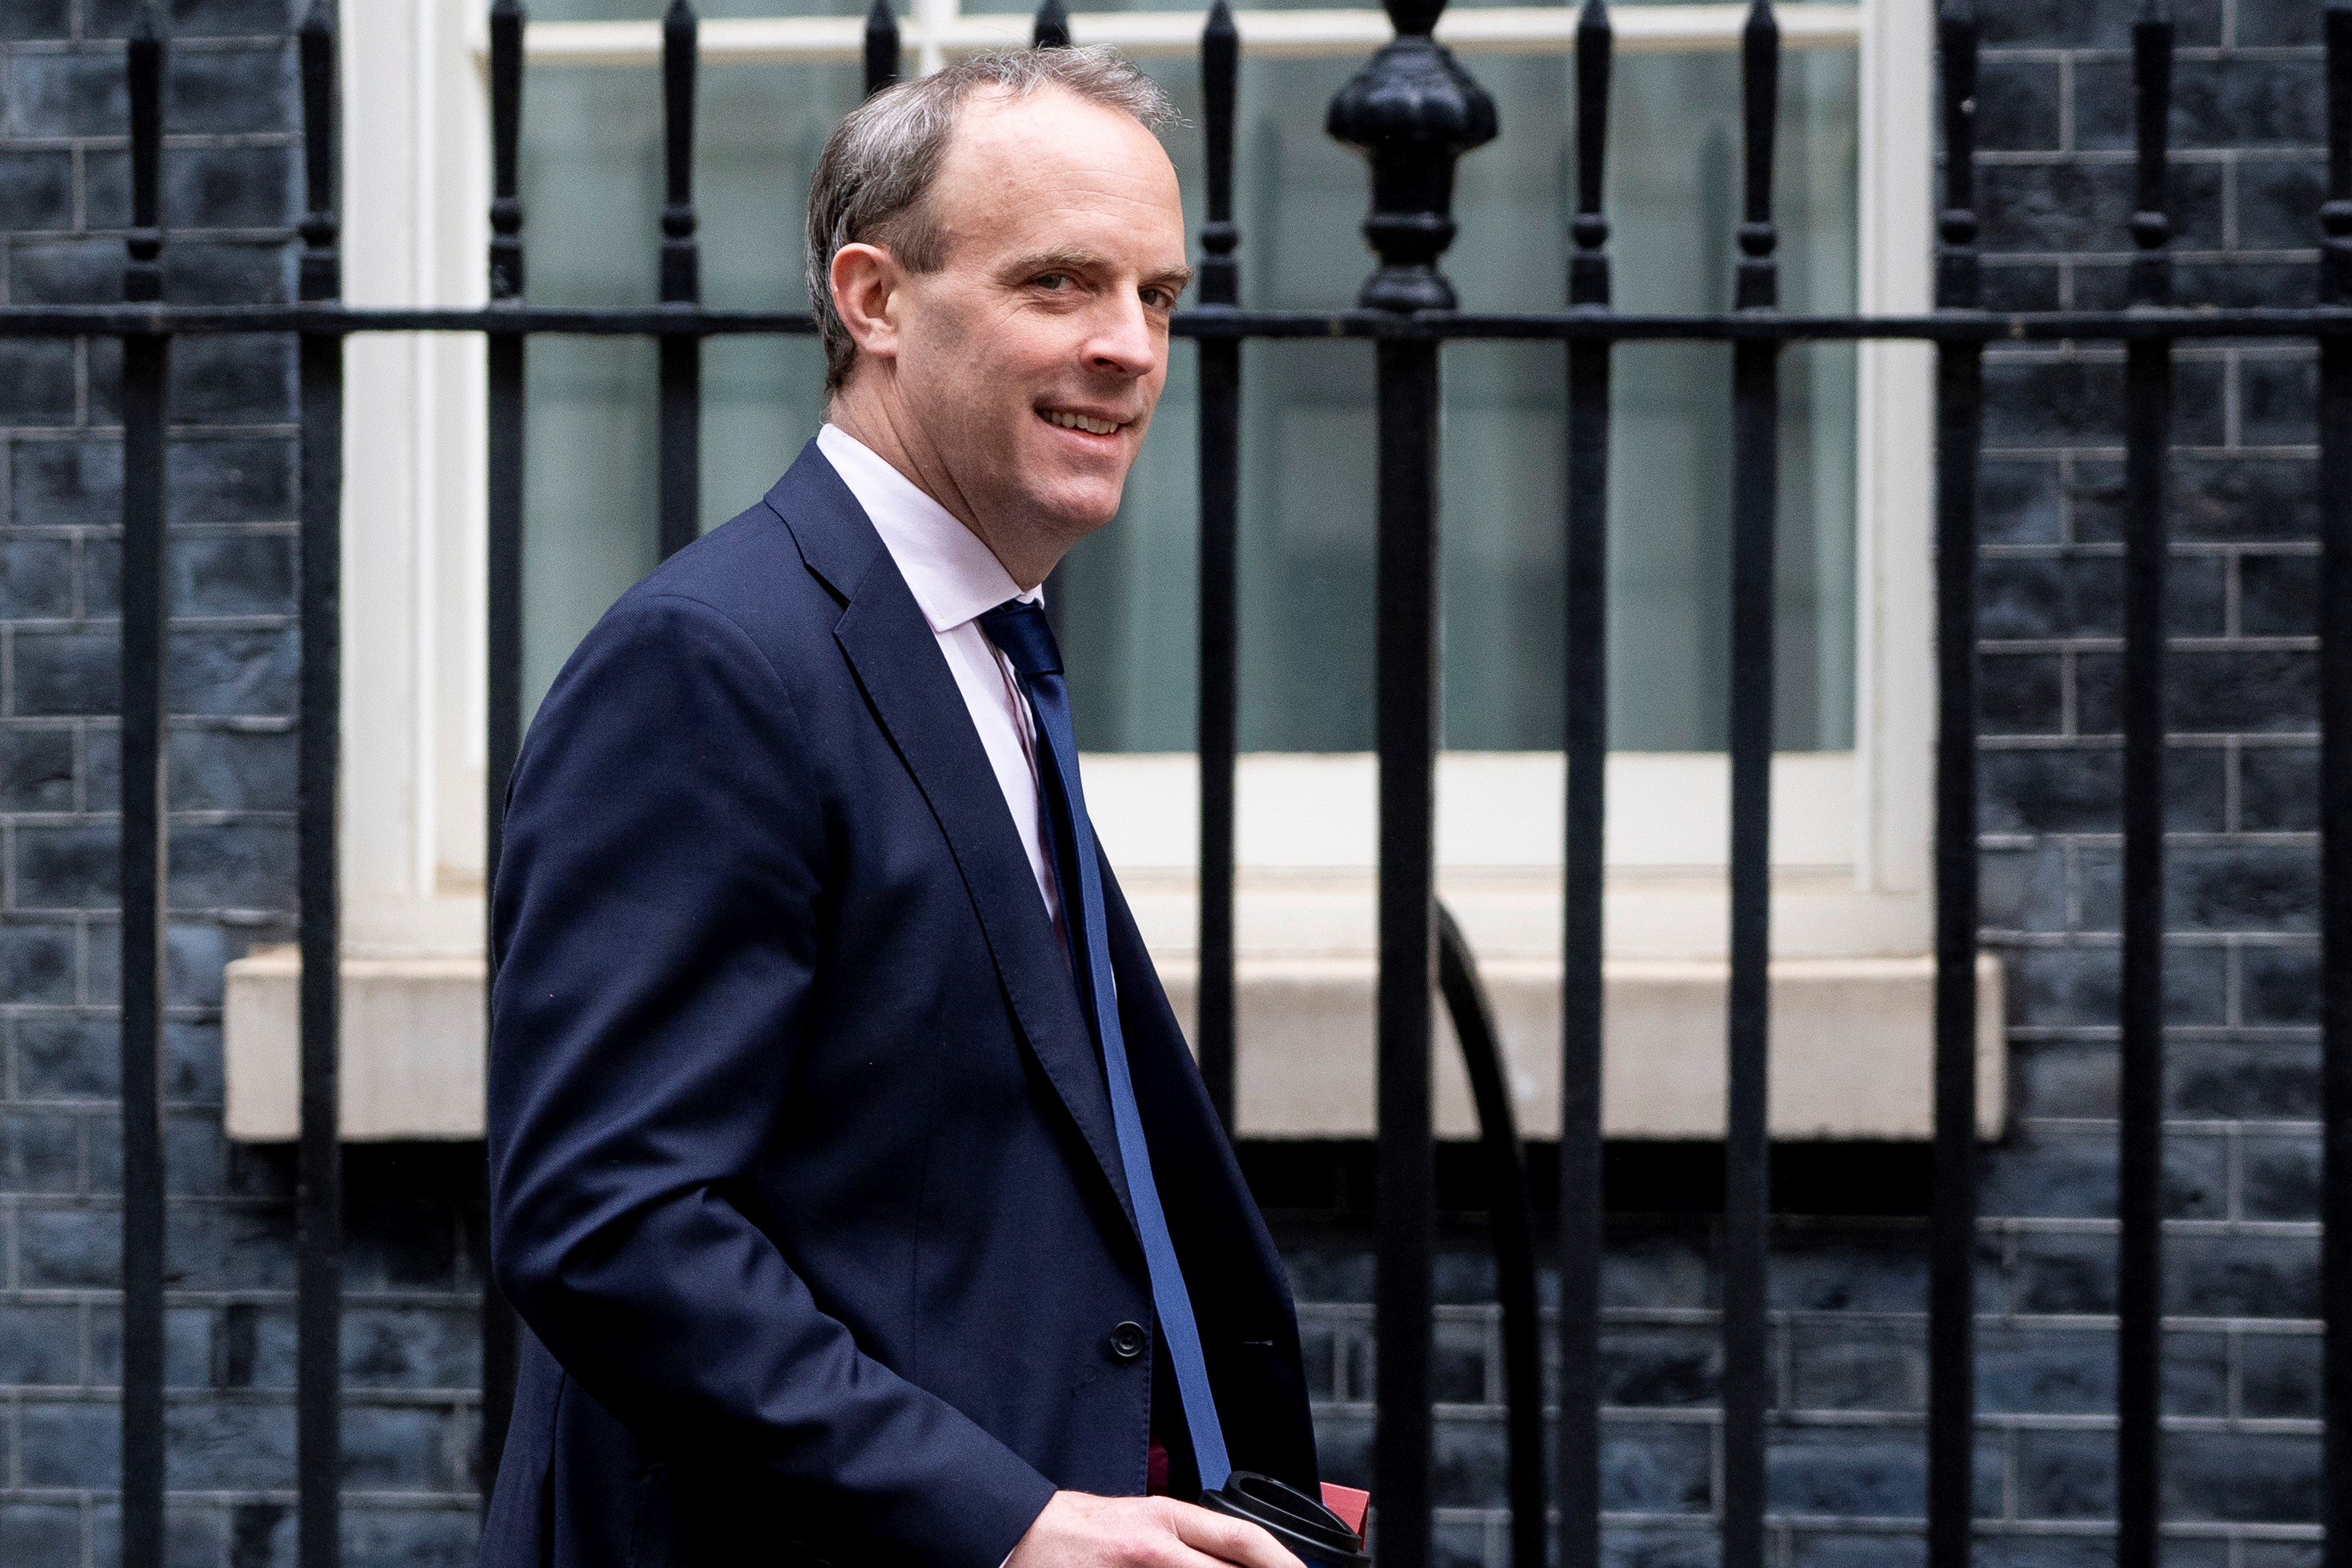 Britain's Foreign Secretary Dominic Raab arrives in Downing Street in central London on April 30, 2020 for the daily novel coronavirus COVID-19 briefing